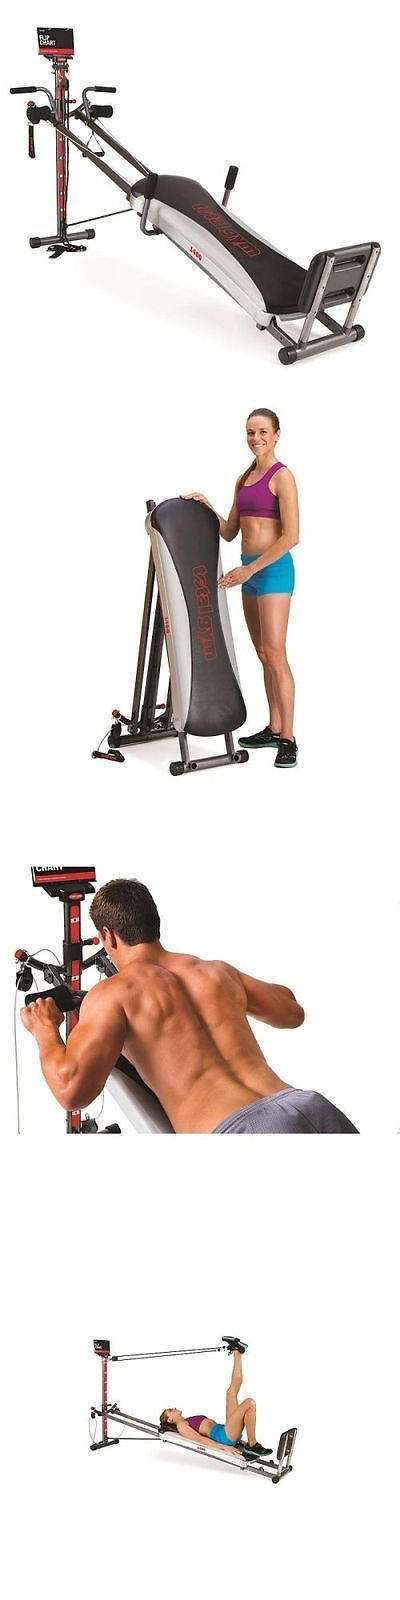 Other Strength Training 28067: Total Gym 1400 Deluxe Home Fitness Exercise Machine Equipment Workout Dvd Muscle -> BUY IT NOW ONLY: $338.77 on eBay!